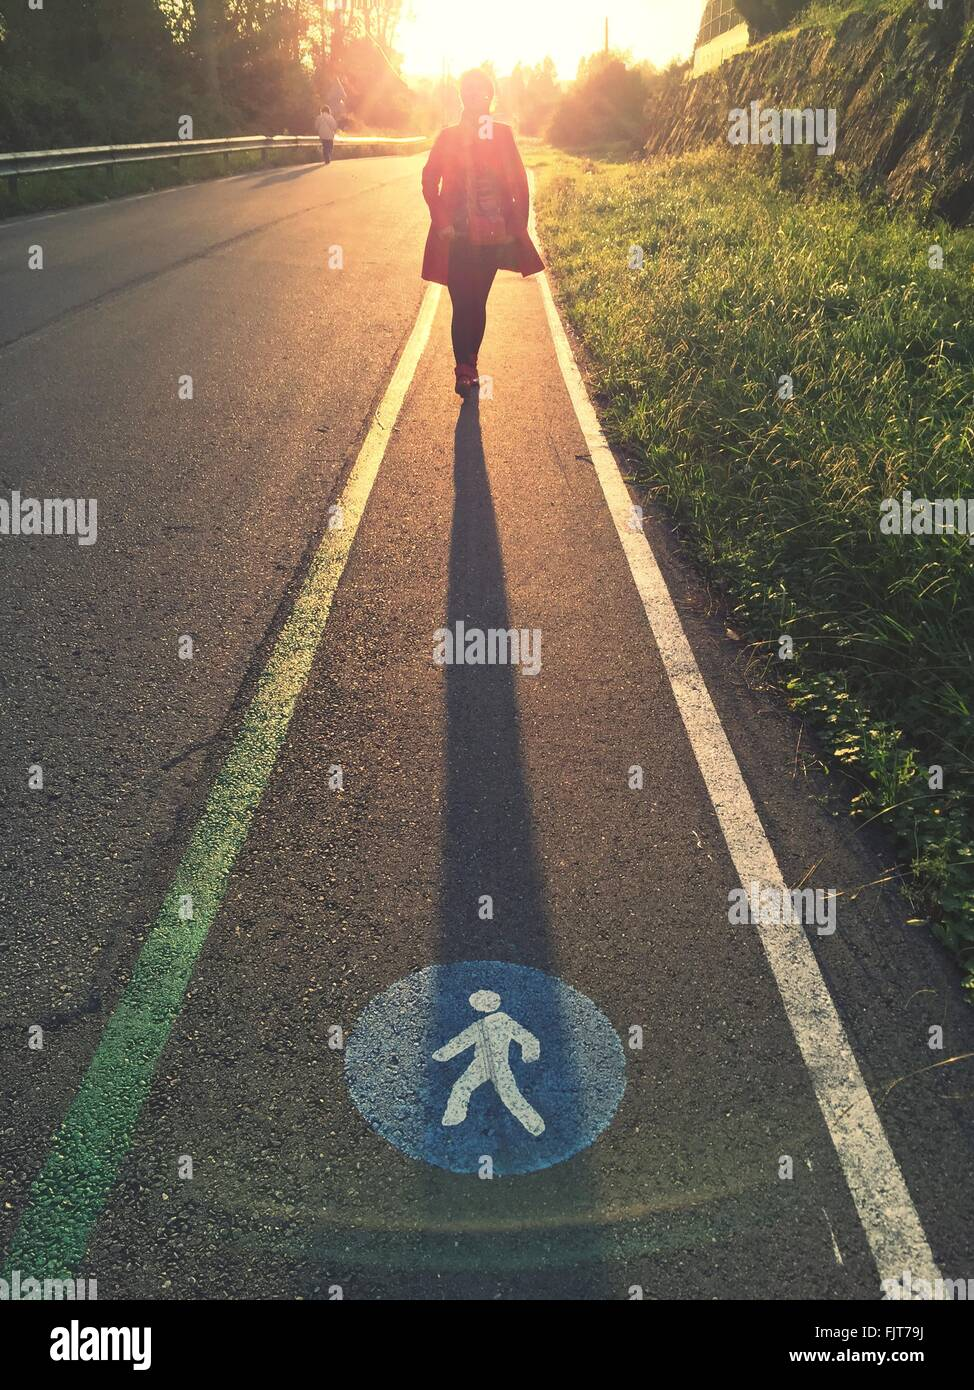 Person Walking On Illuminated Street - Stock Image